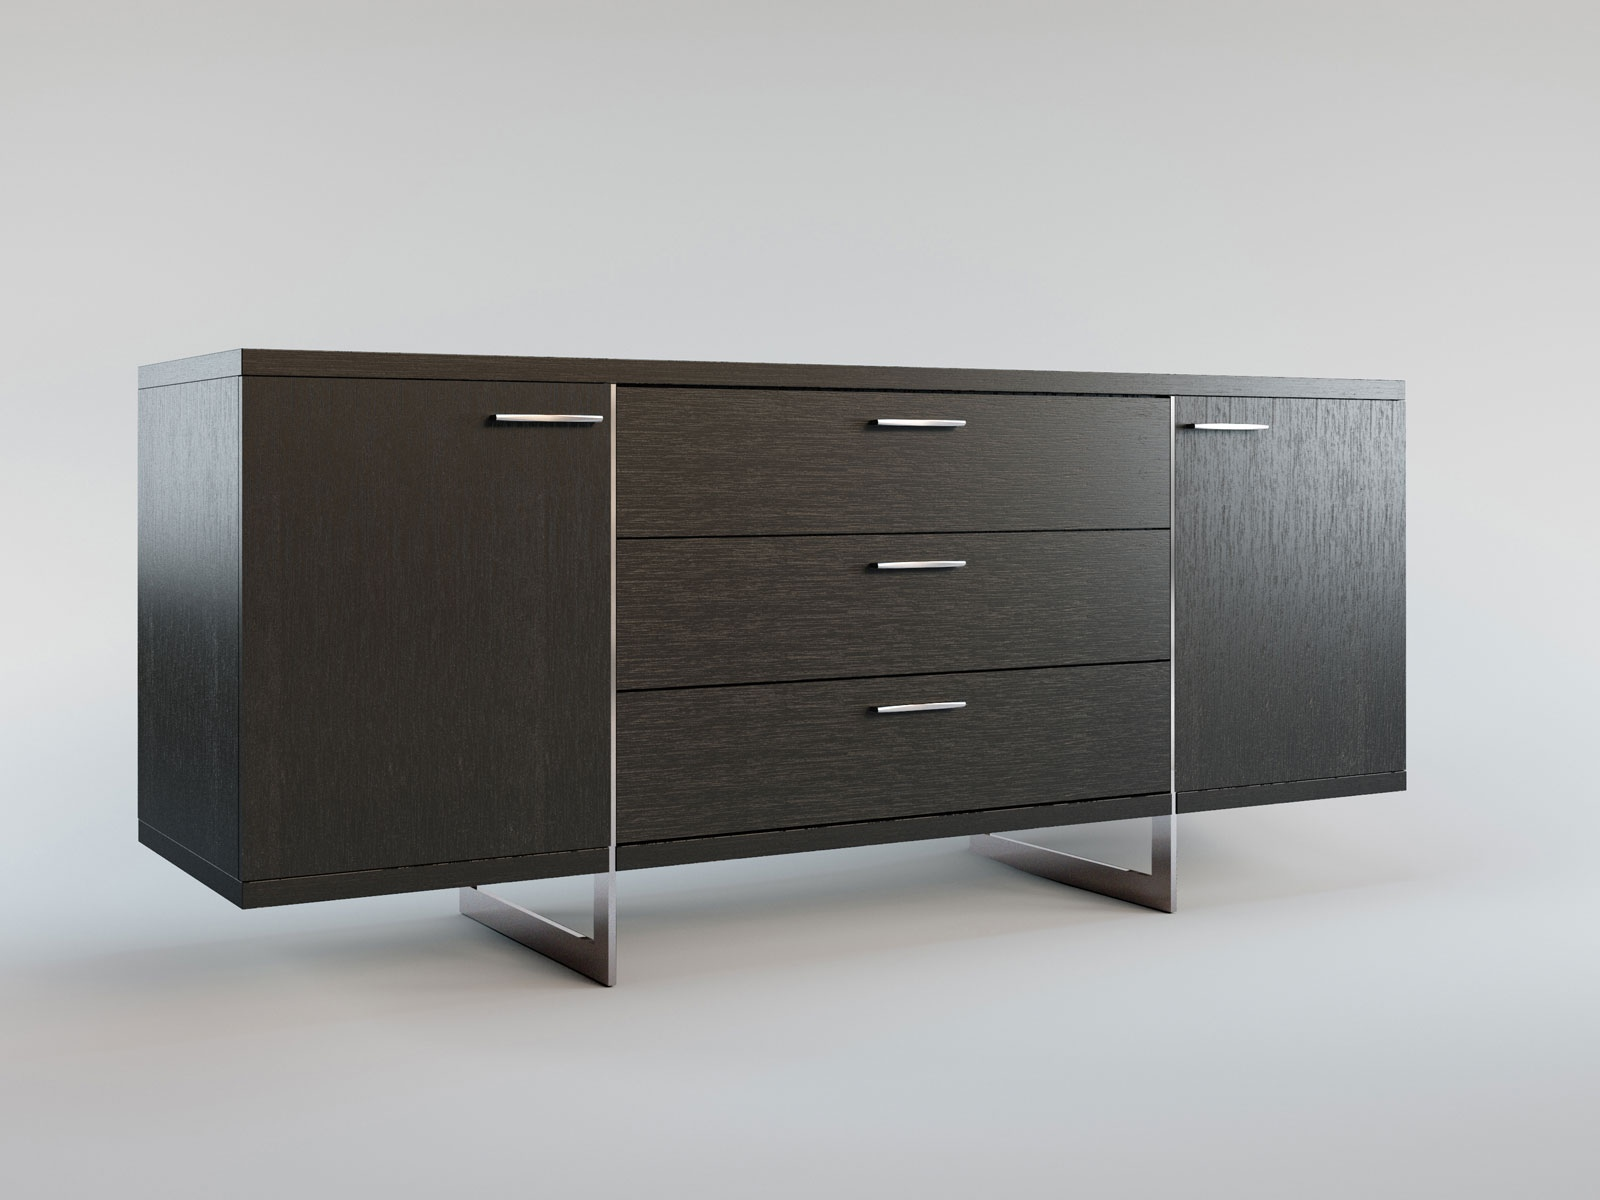 Contemporary buffet table furniture - Sideboard Buffet With Three Storage Drawers Tulsa Oklahoma Mlgre Buffet Table